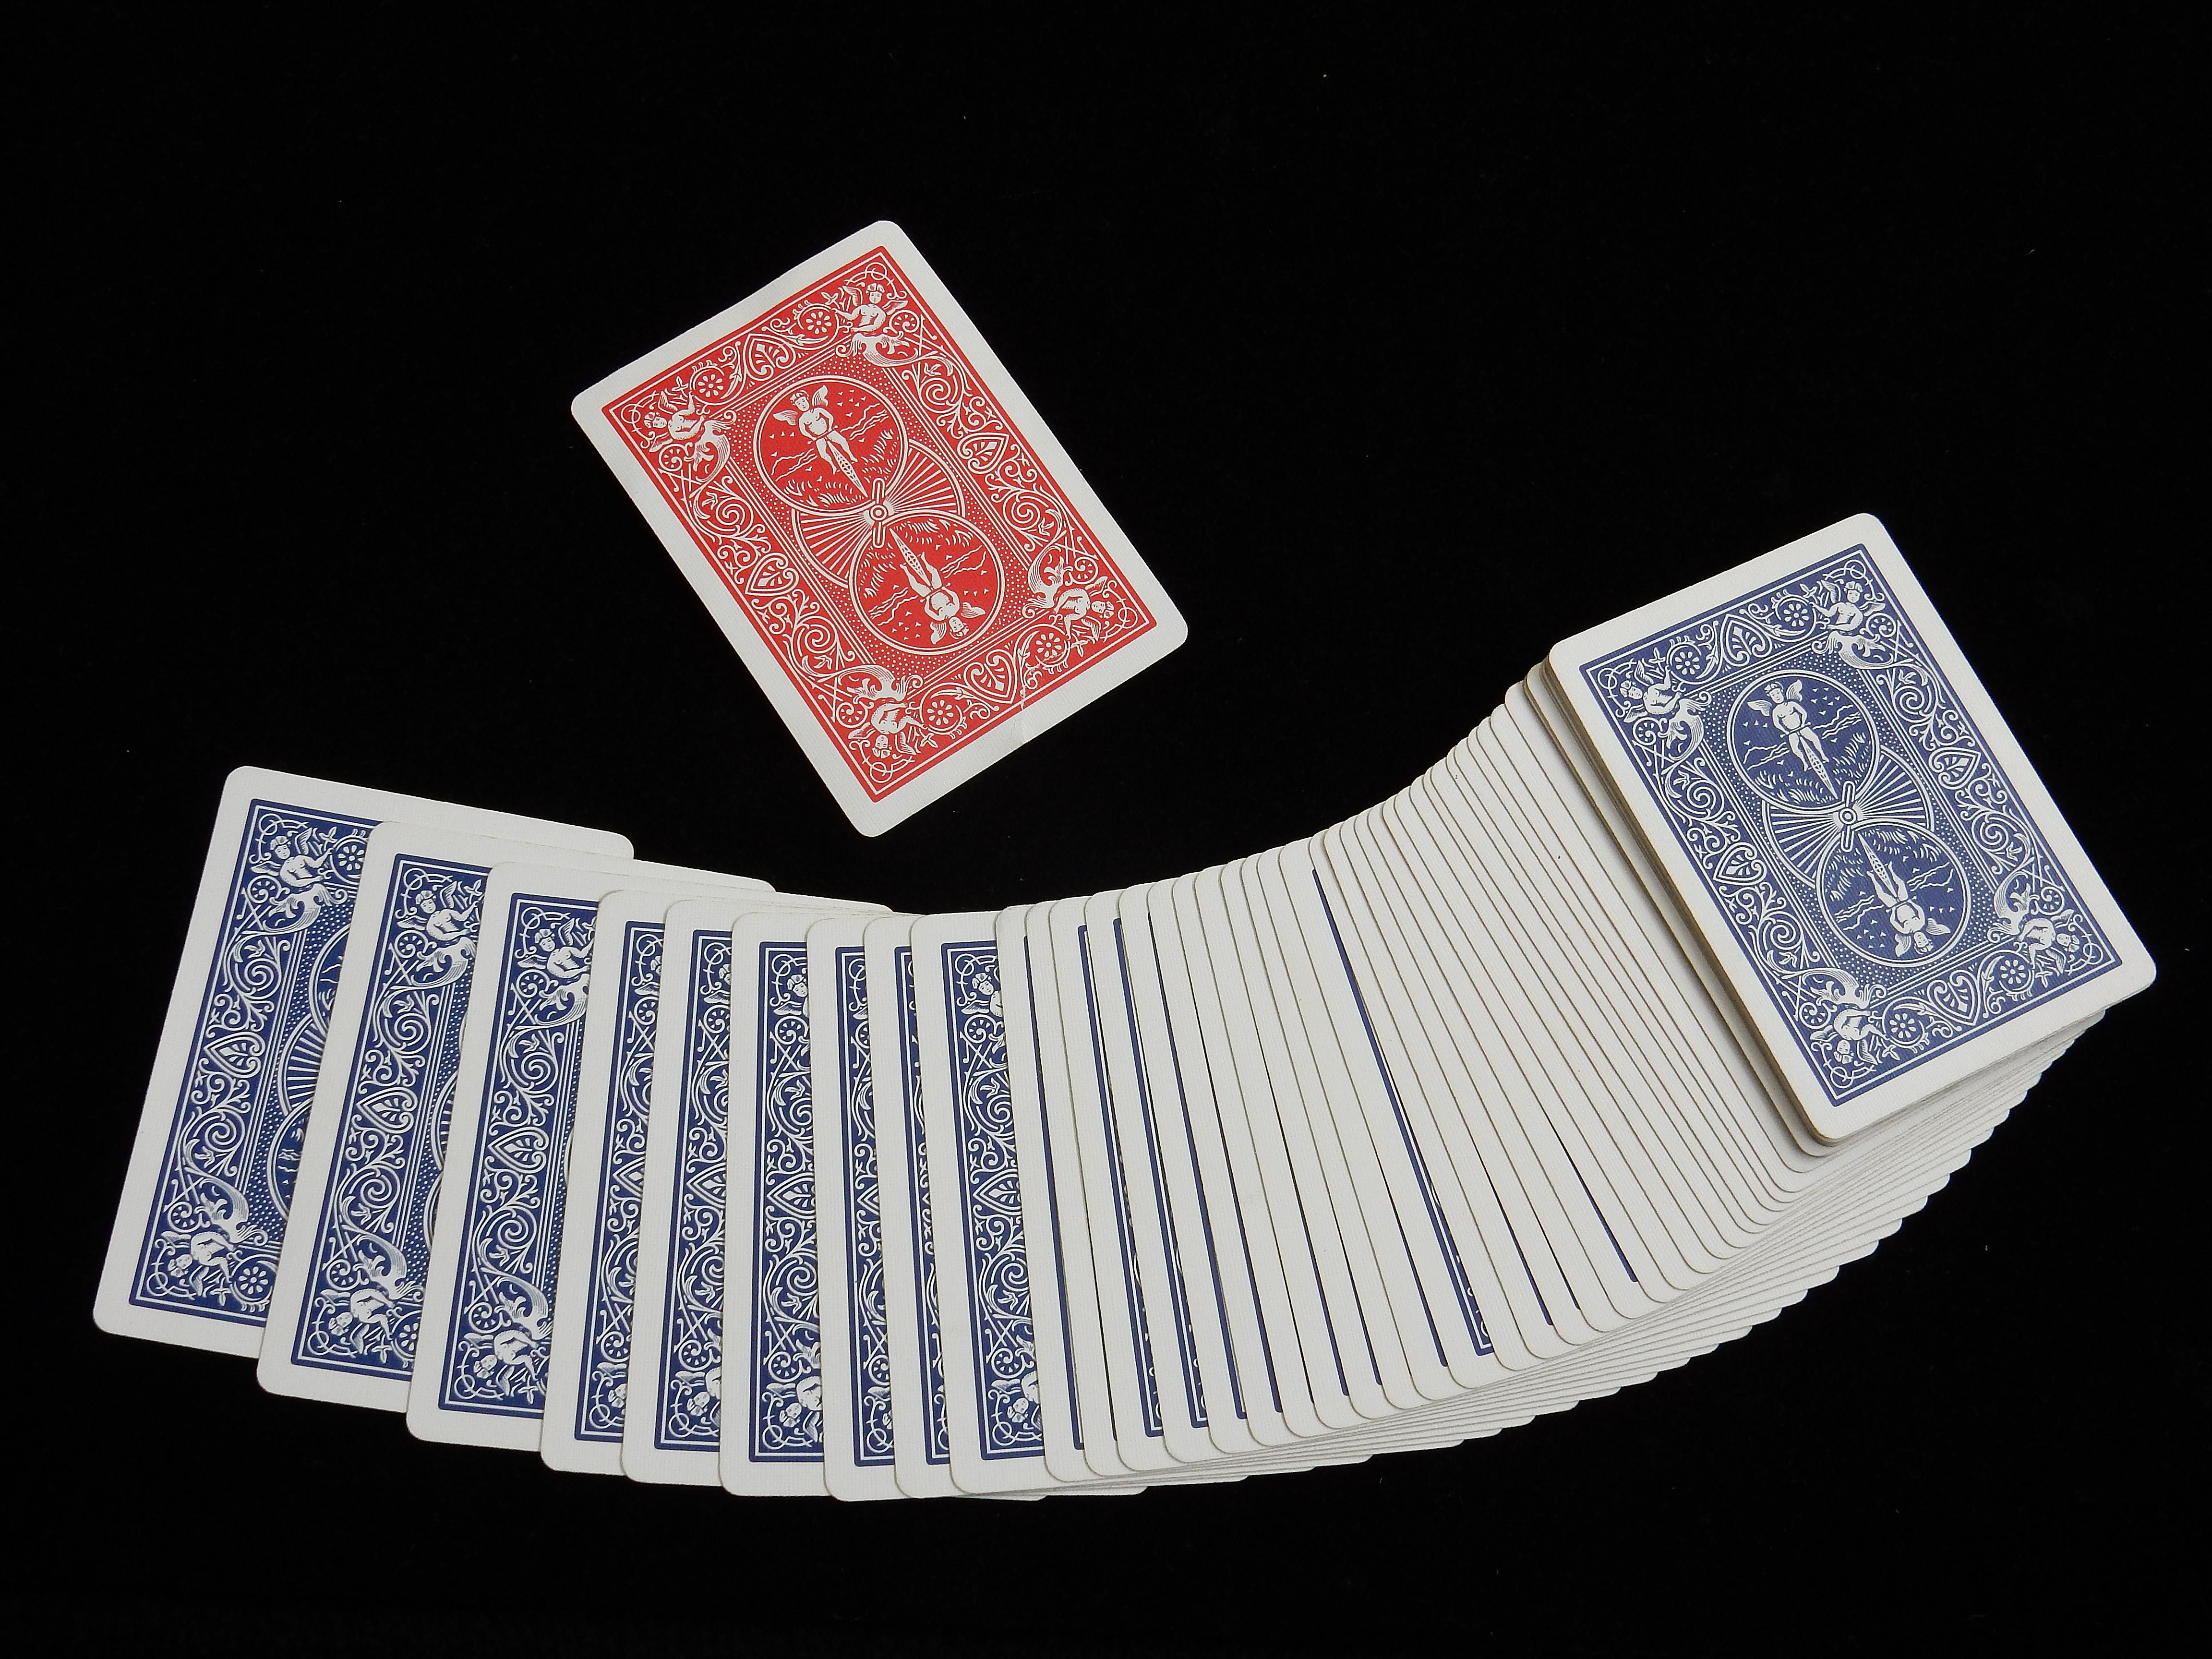 Blue deck of cards with one red card